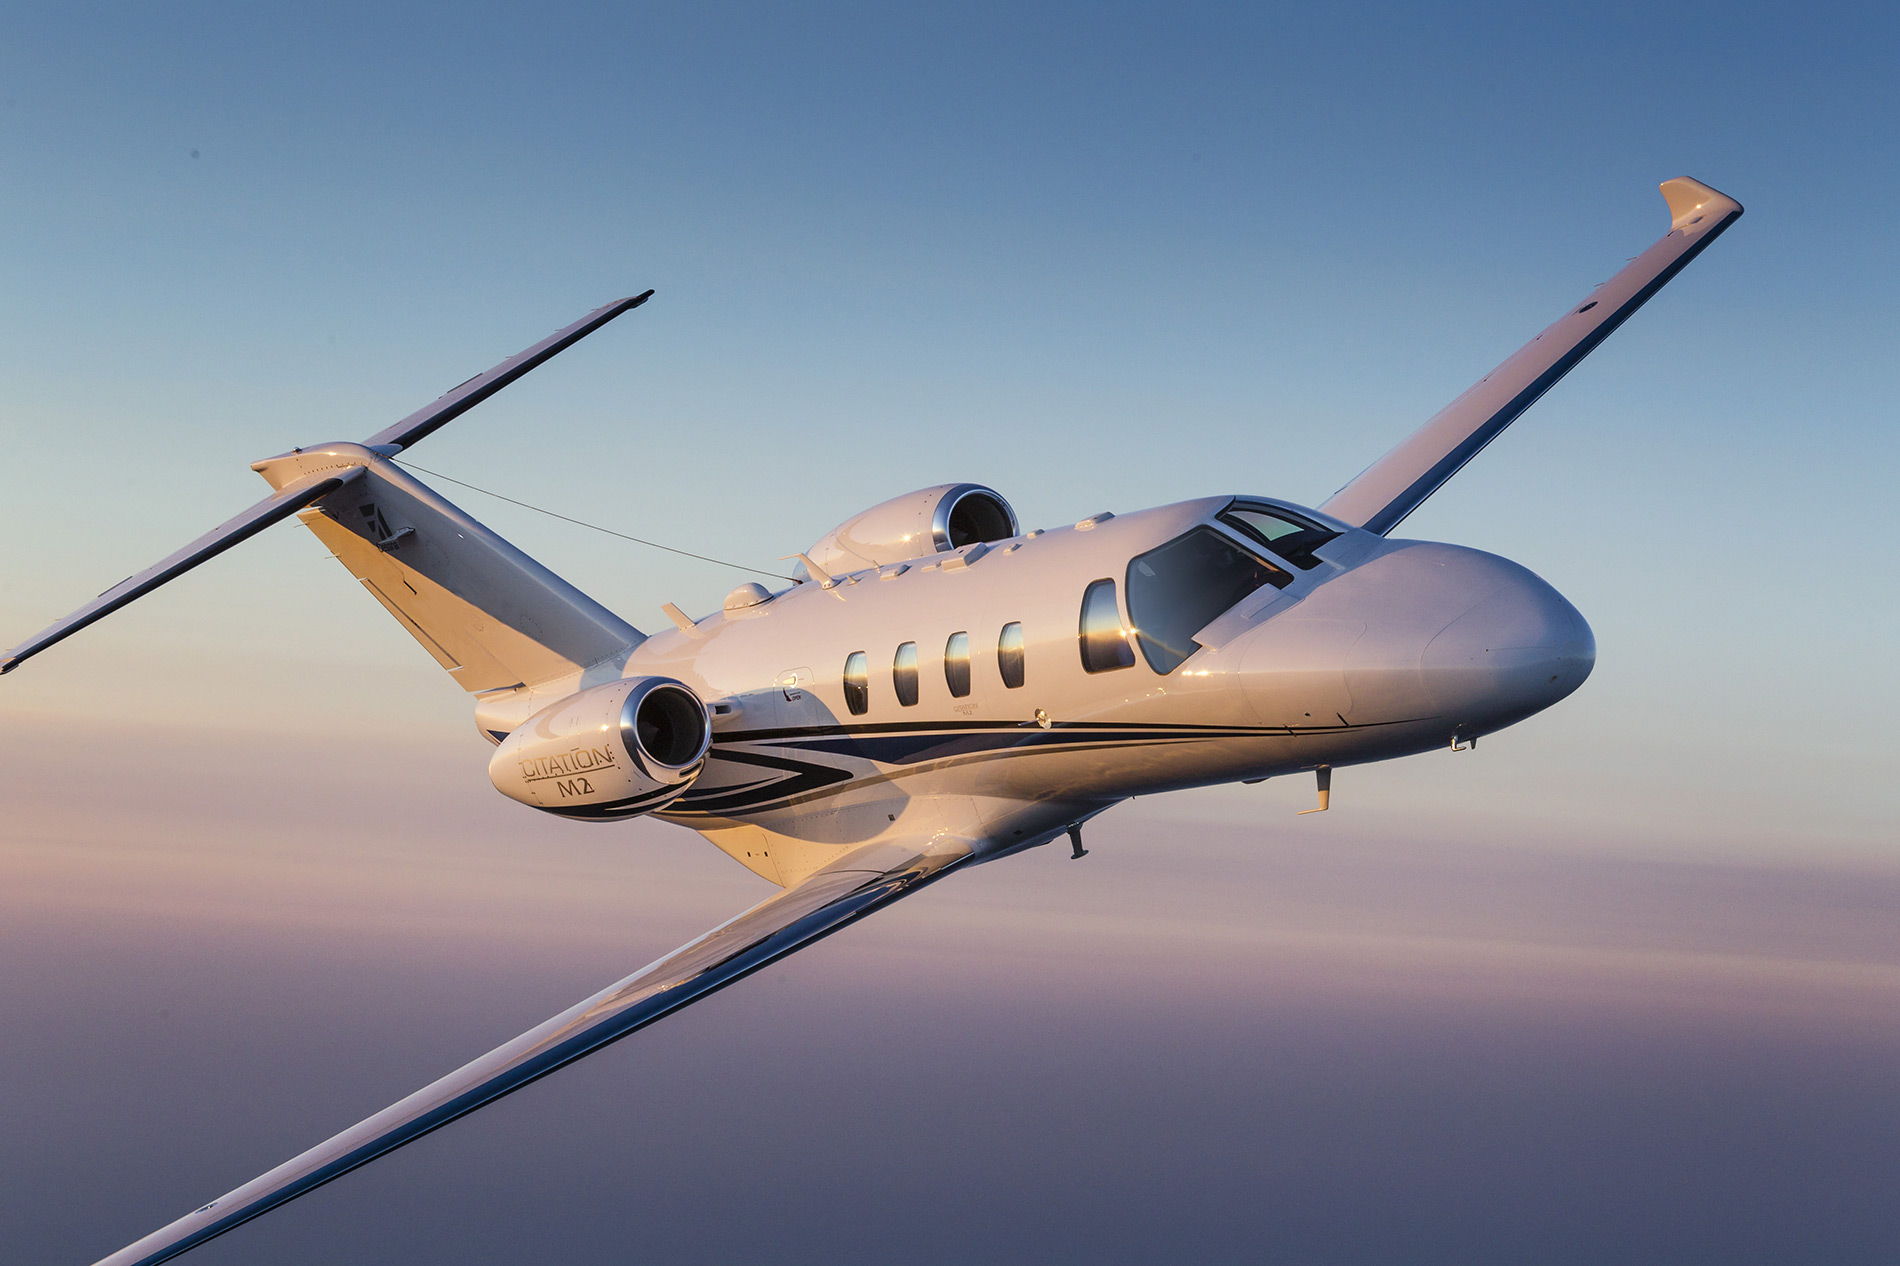 Cessna Citation in flight